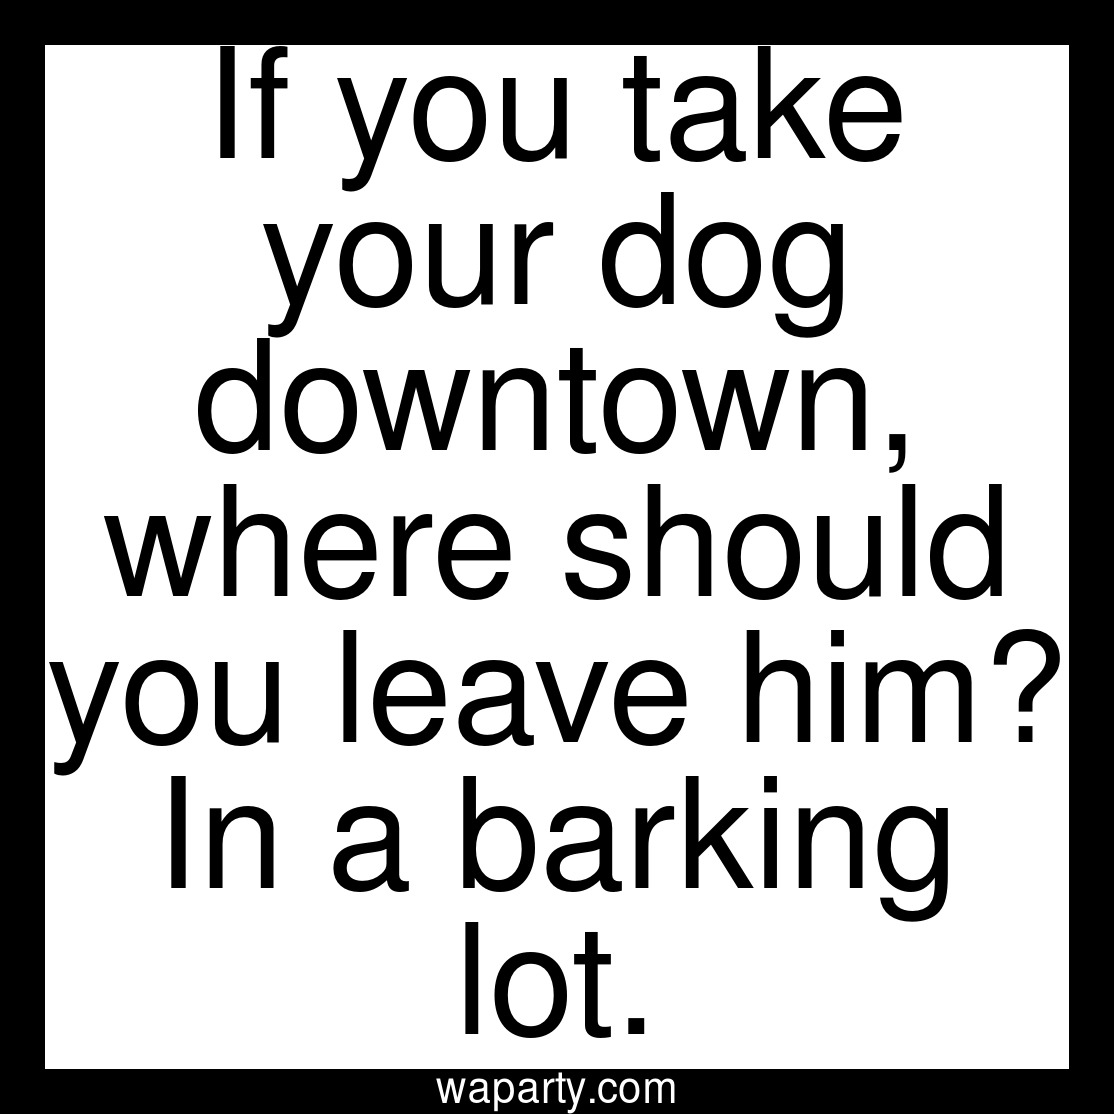 If you take your dog downtown, where should you leave him? In a barking lot.